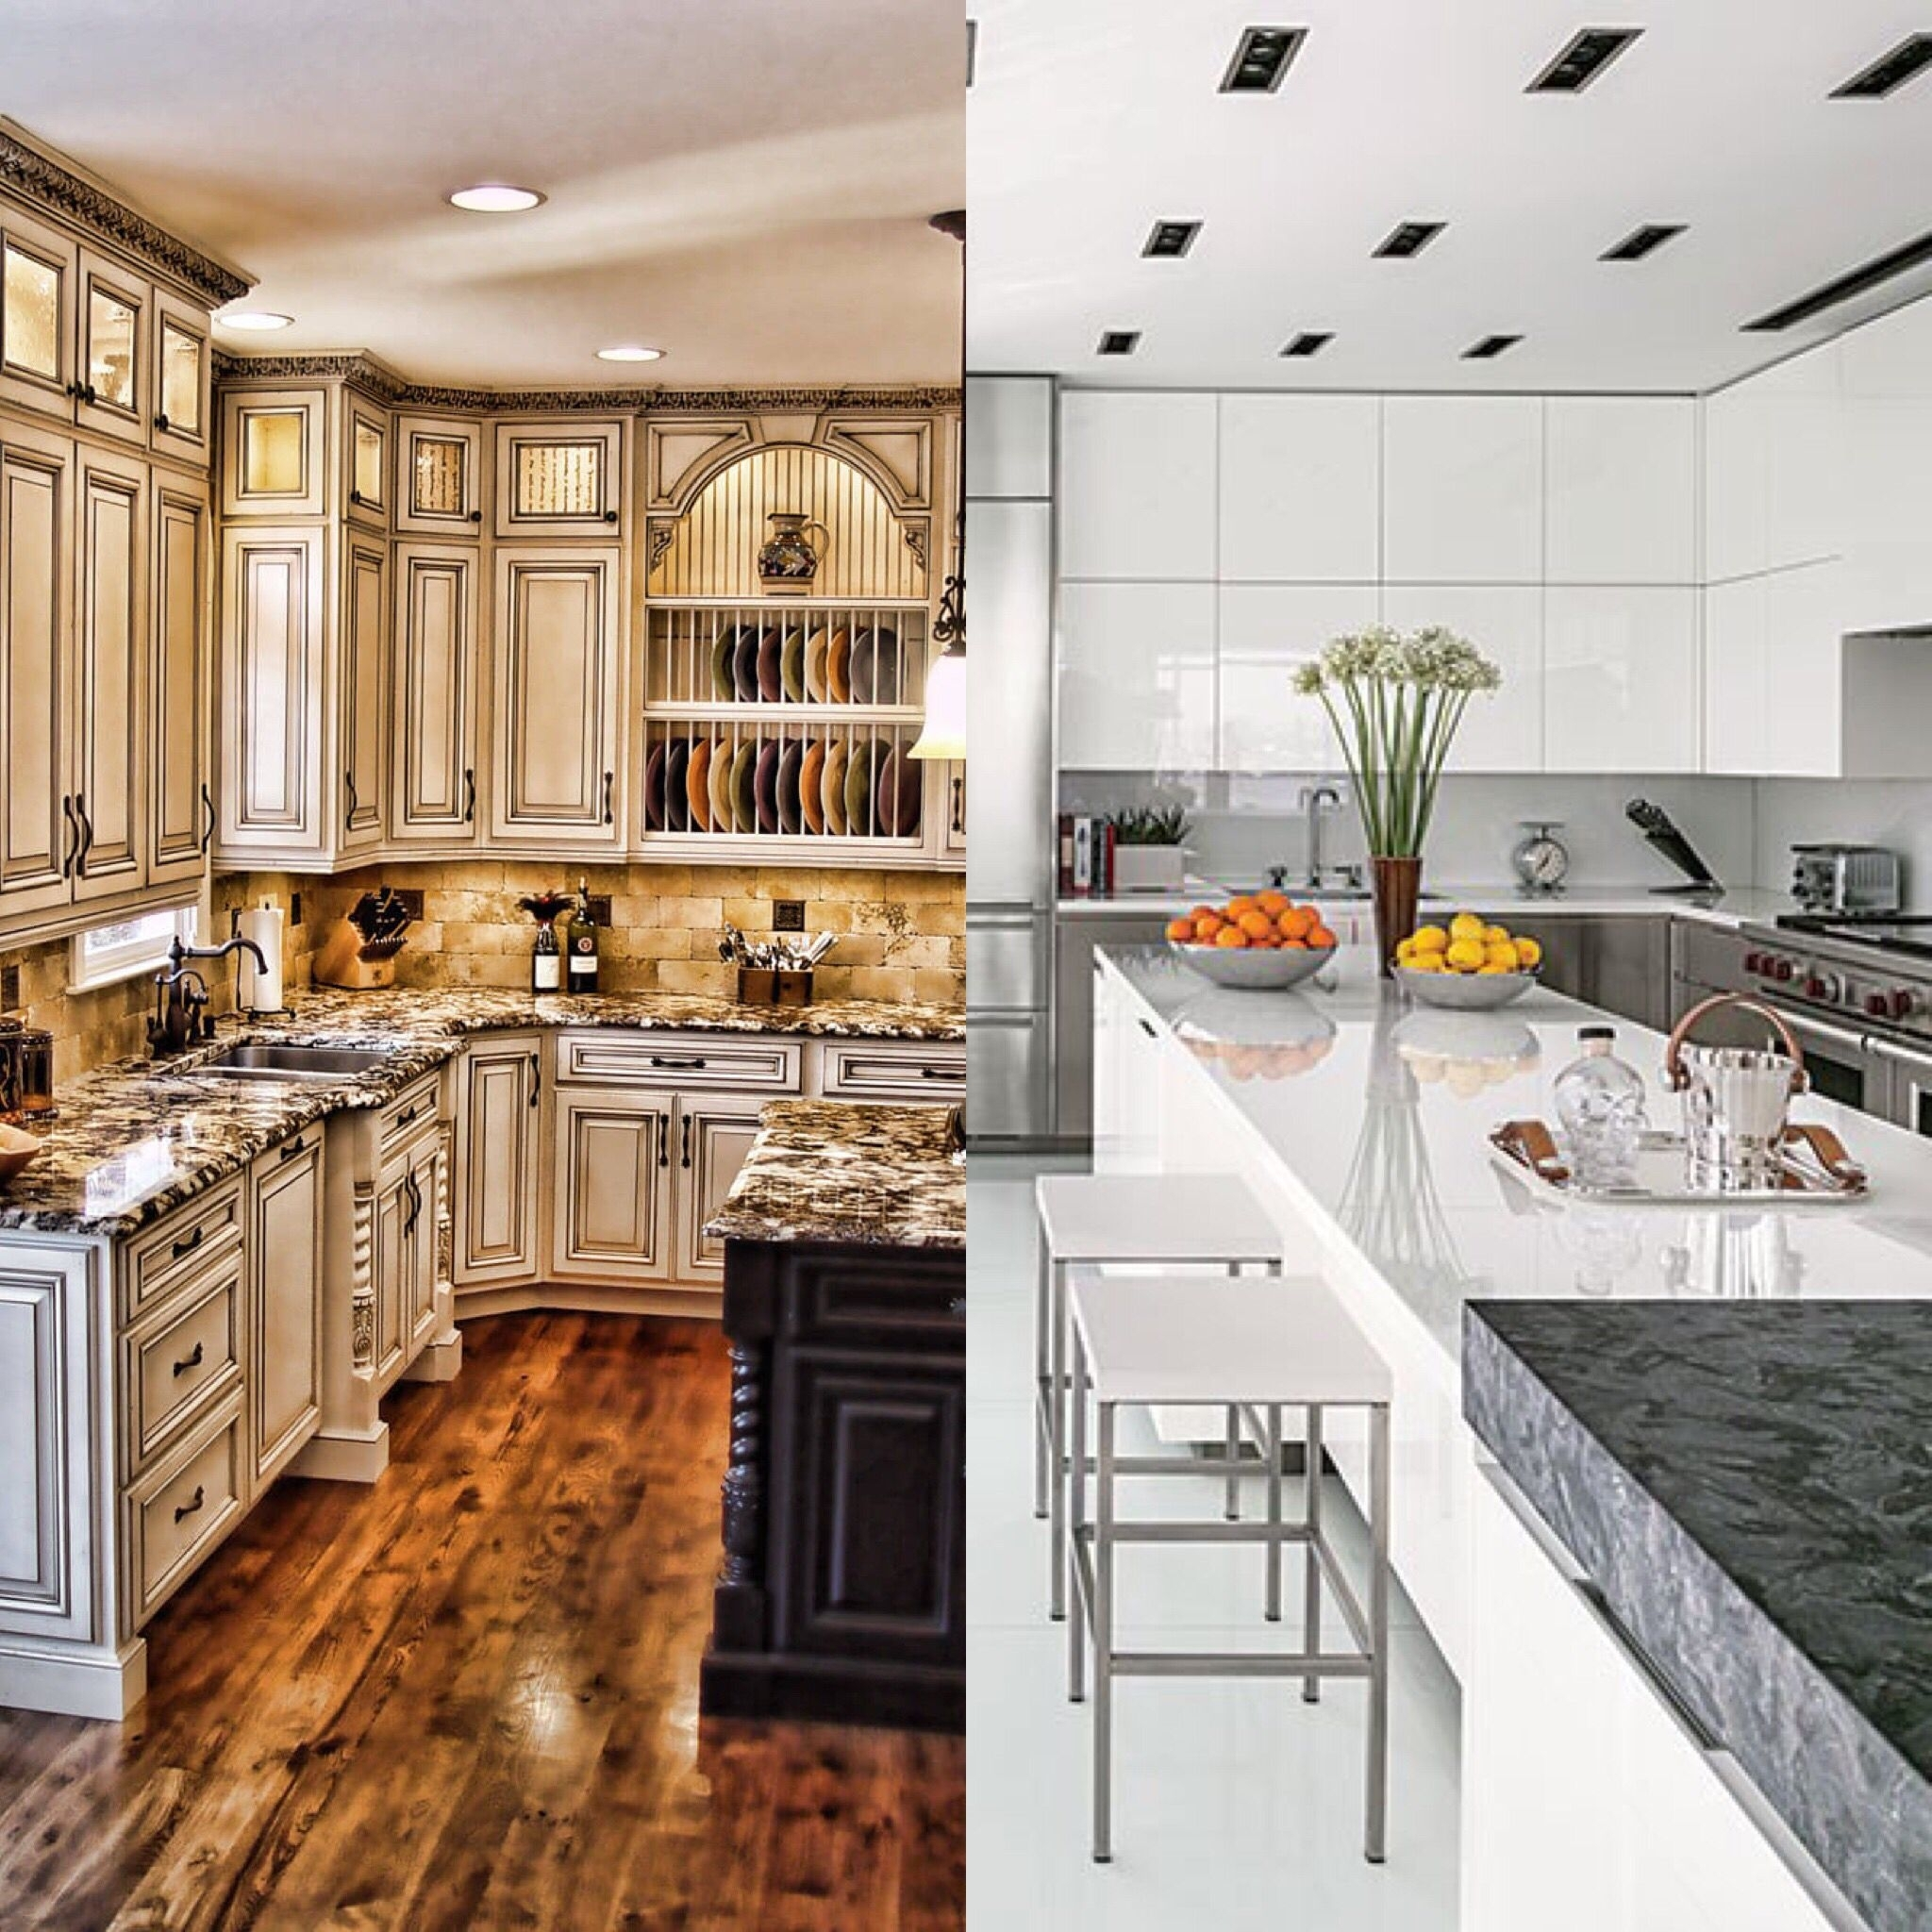 Antique White Kitchen Cabinets You Ll Love In 2021 Visualhunt